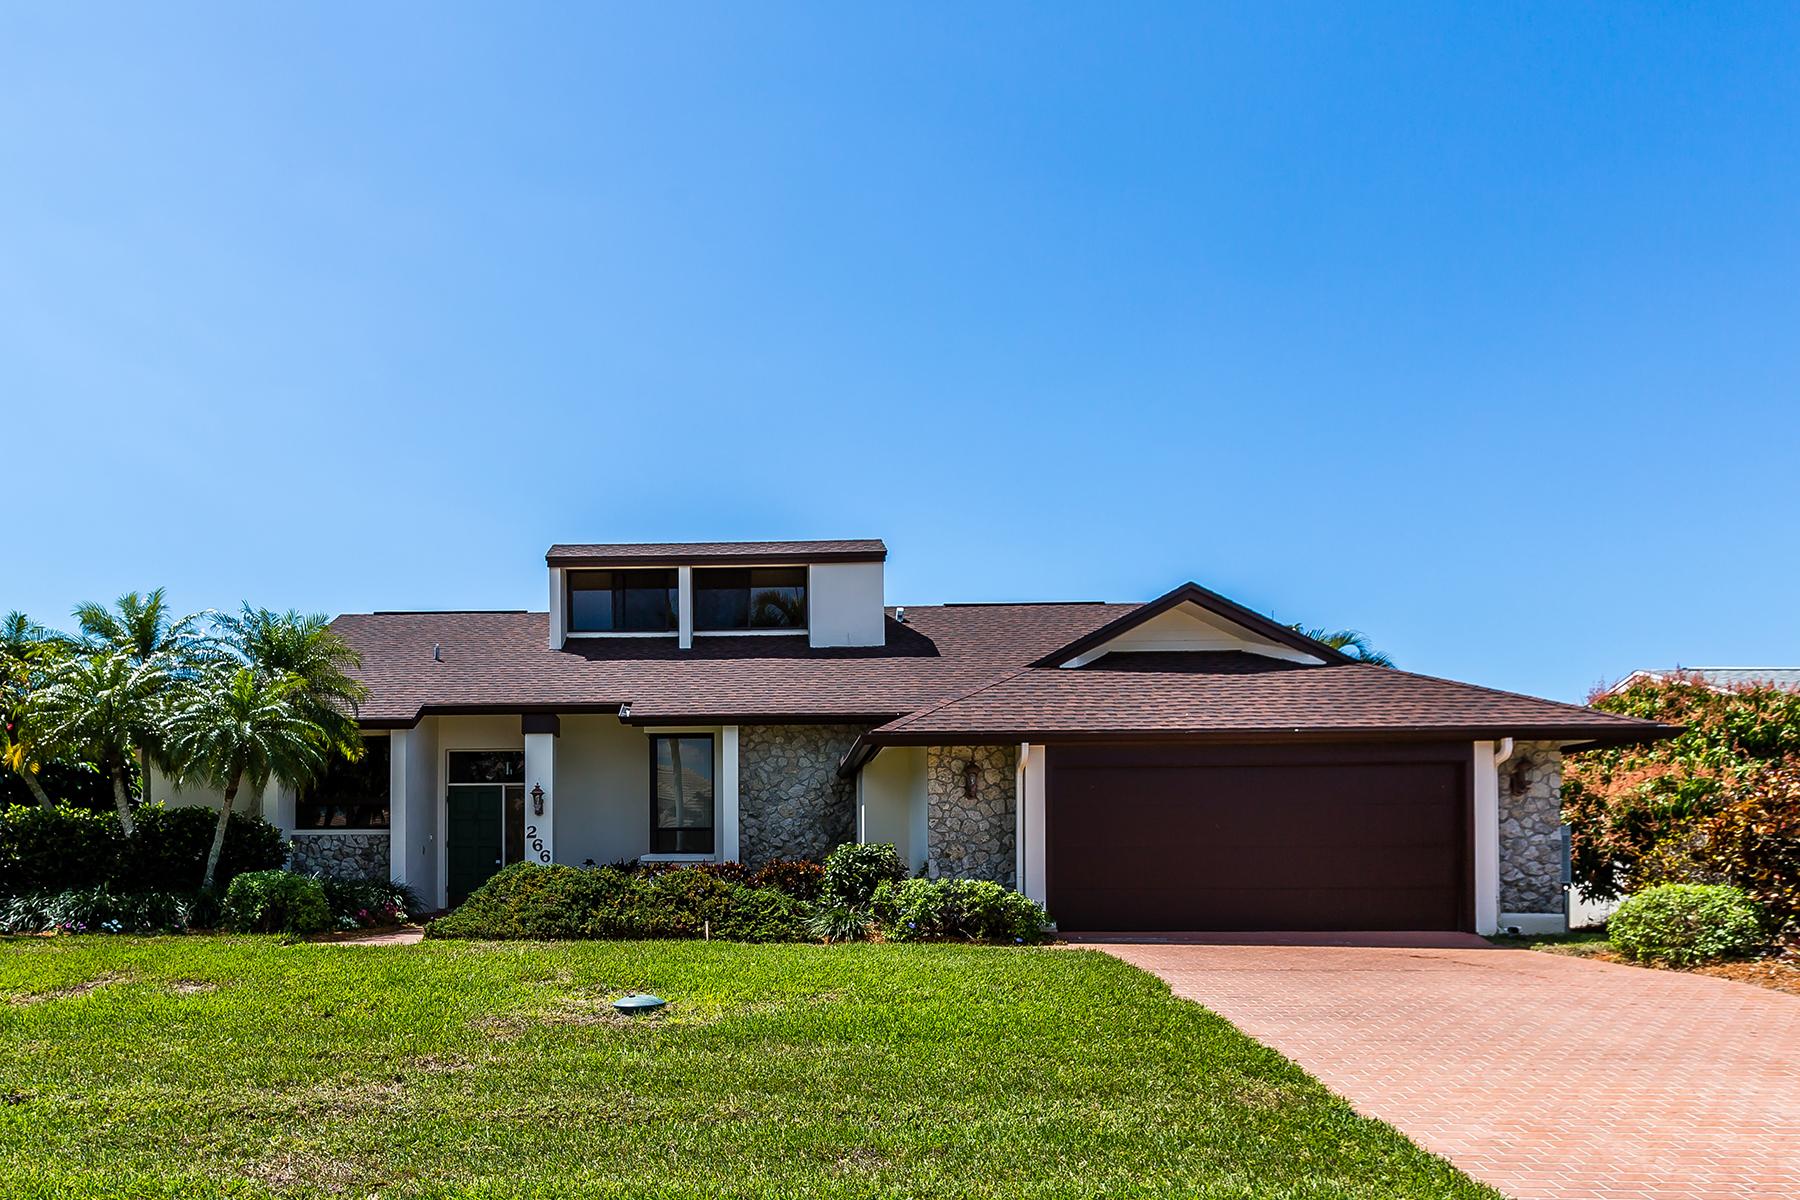 Single Family Home for Sale at MARCO ISLAND 266 Polynesia Ct Marco Island, Florida 34145 United States